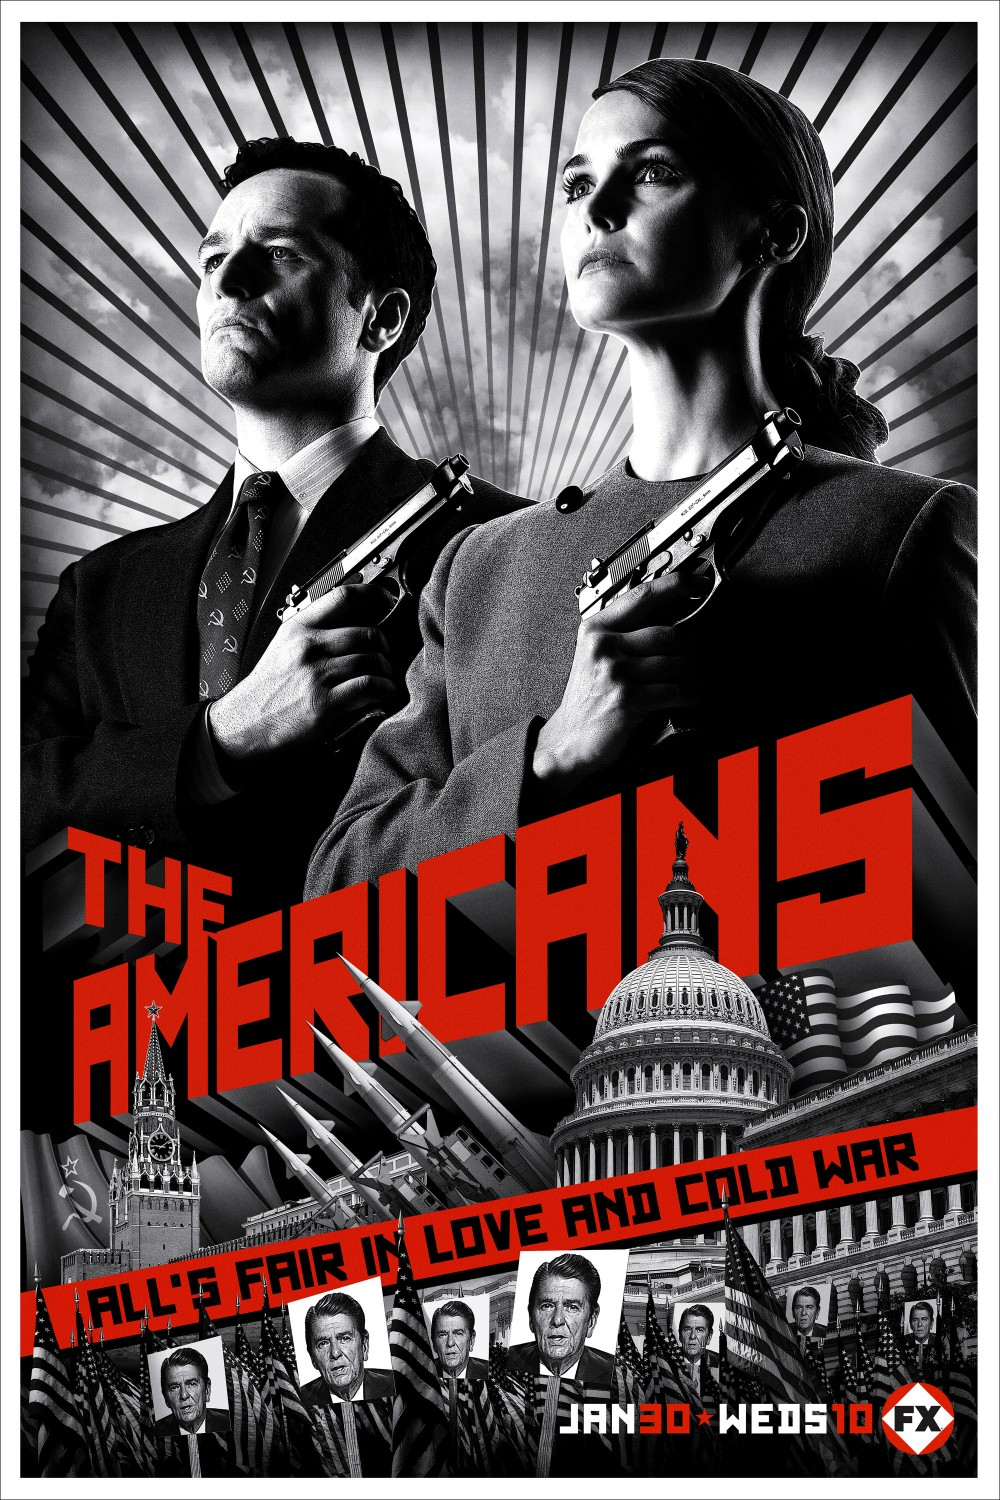 The Americans – KGB undercover